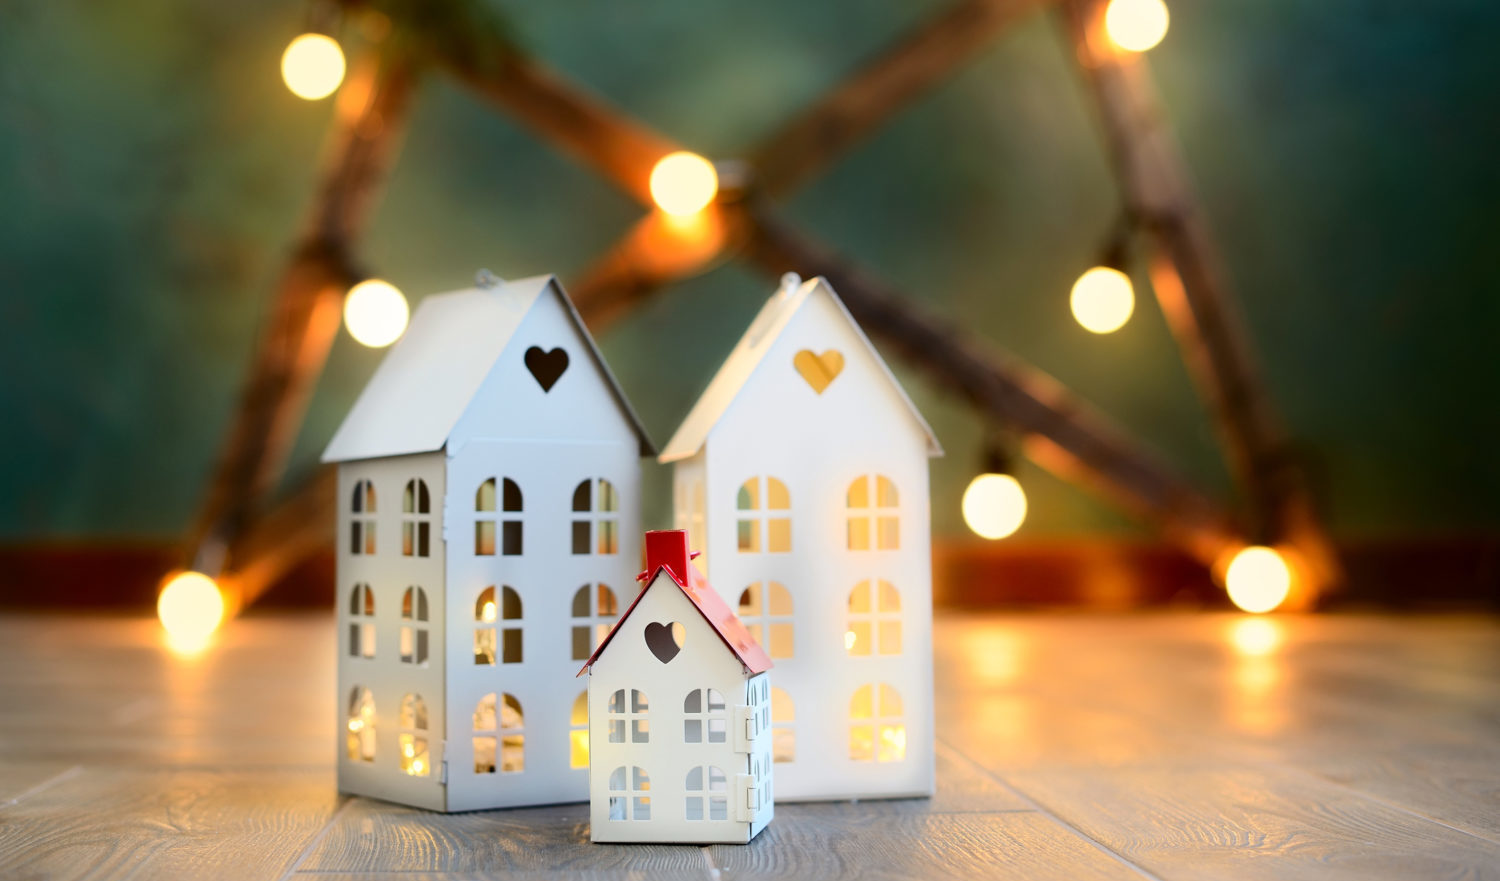 little toy Christmas houses with a burning light inside is on blured green background. Real estate, holiday, xmas, miniature